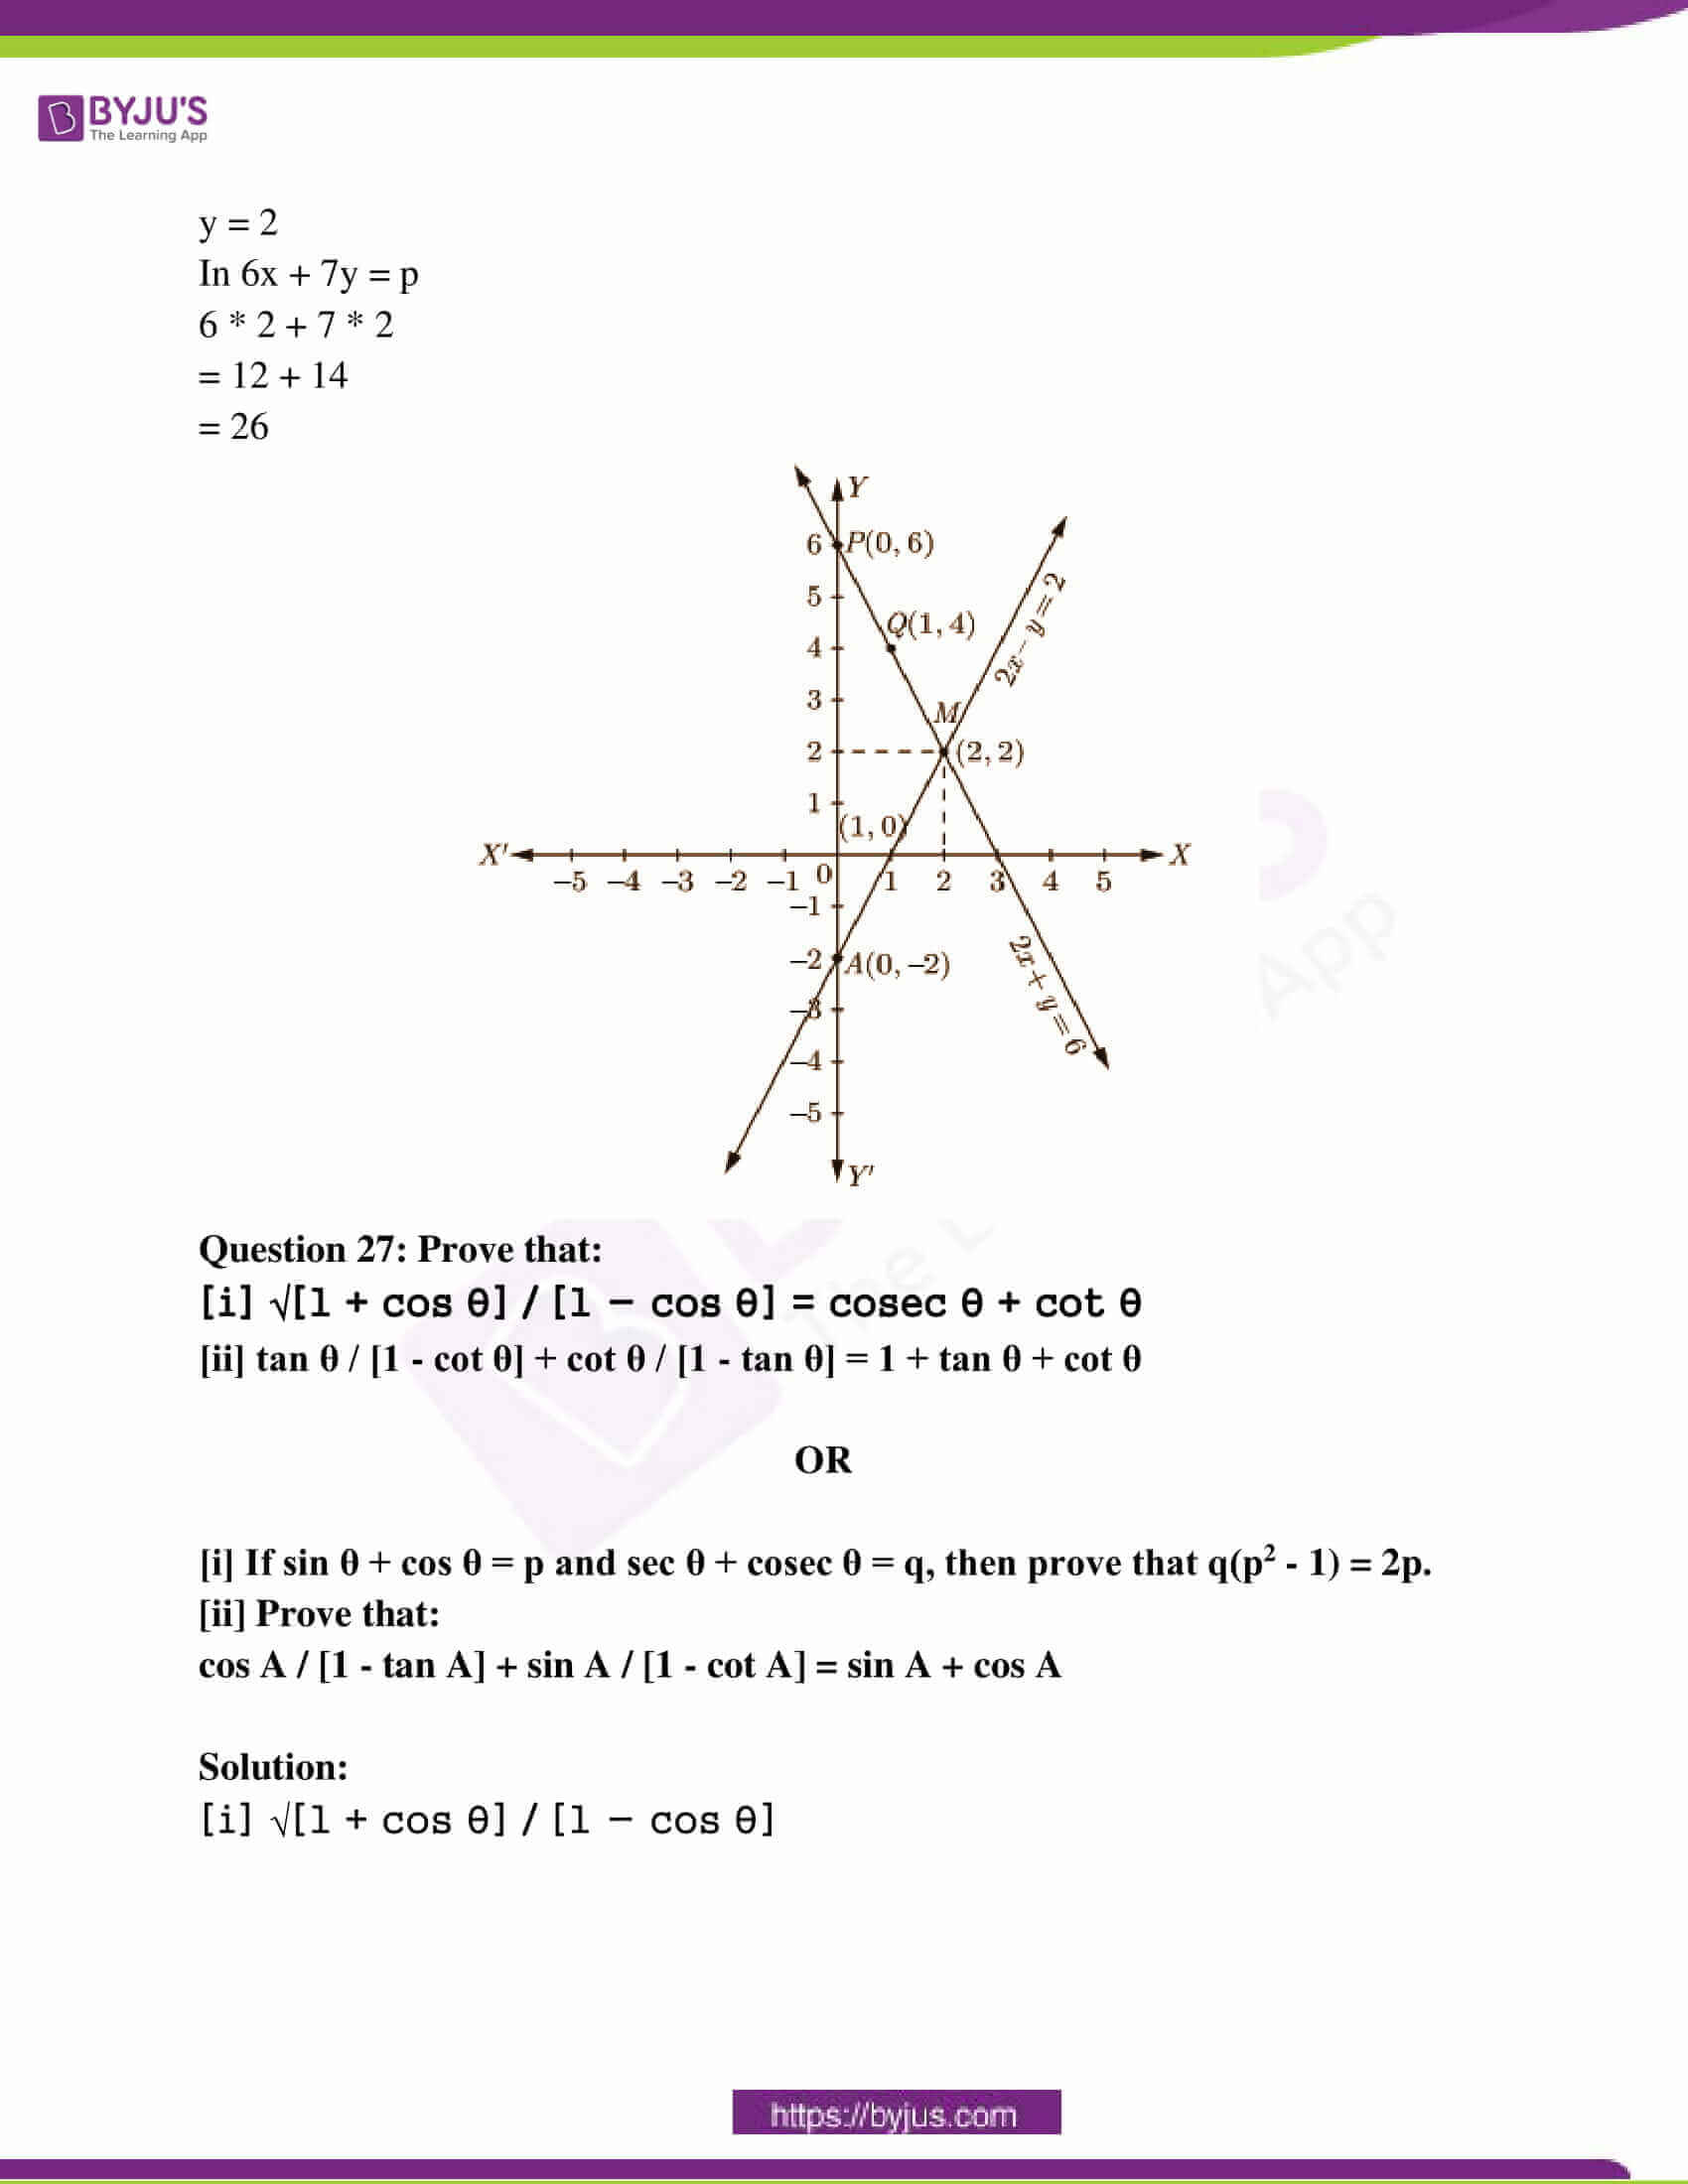 rajasthan board class 10 examination question paper sol march 2018 14